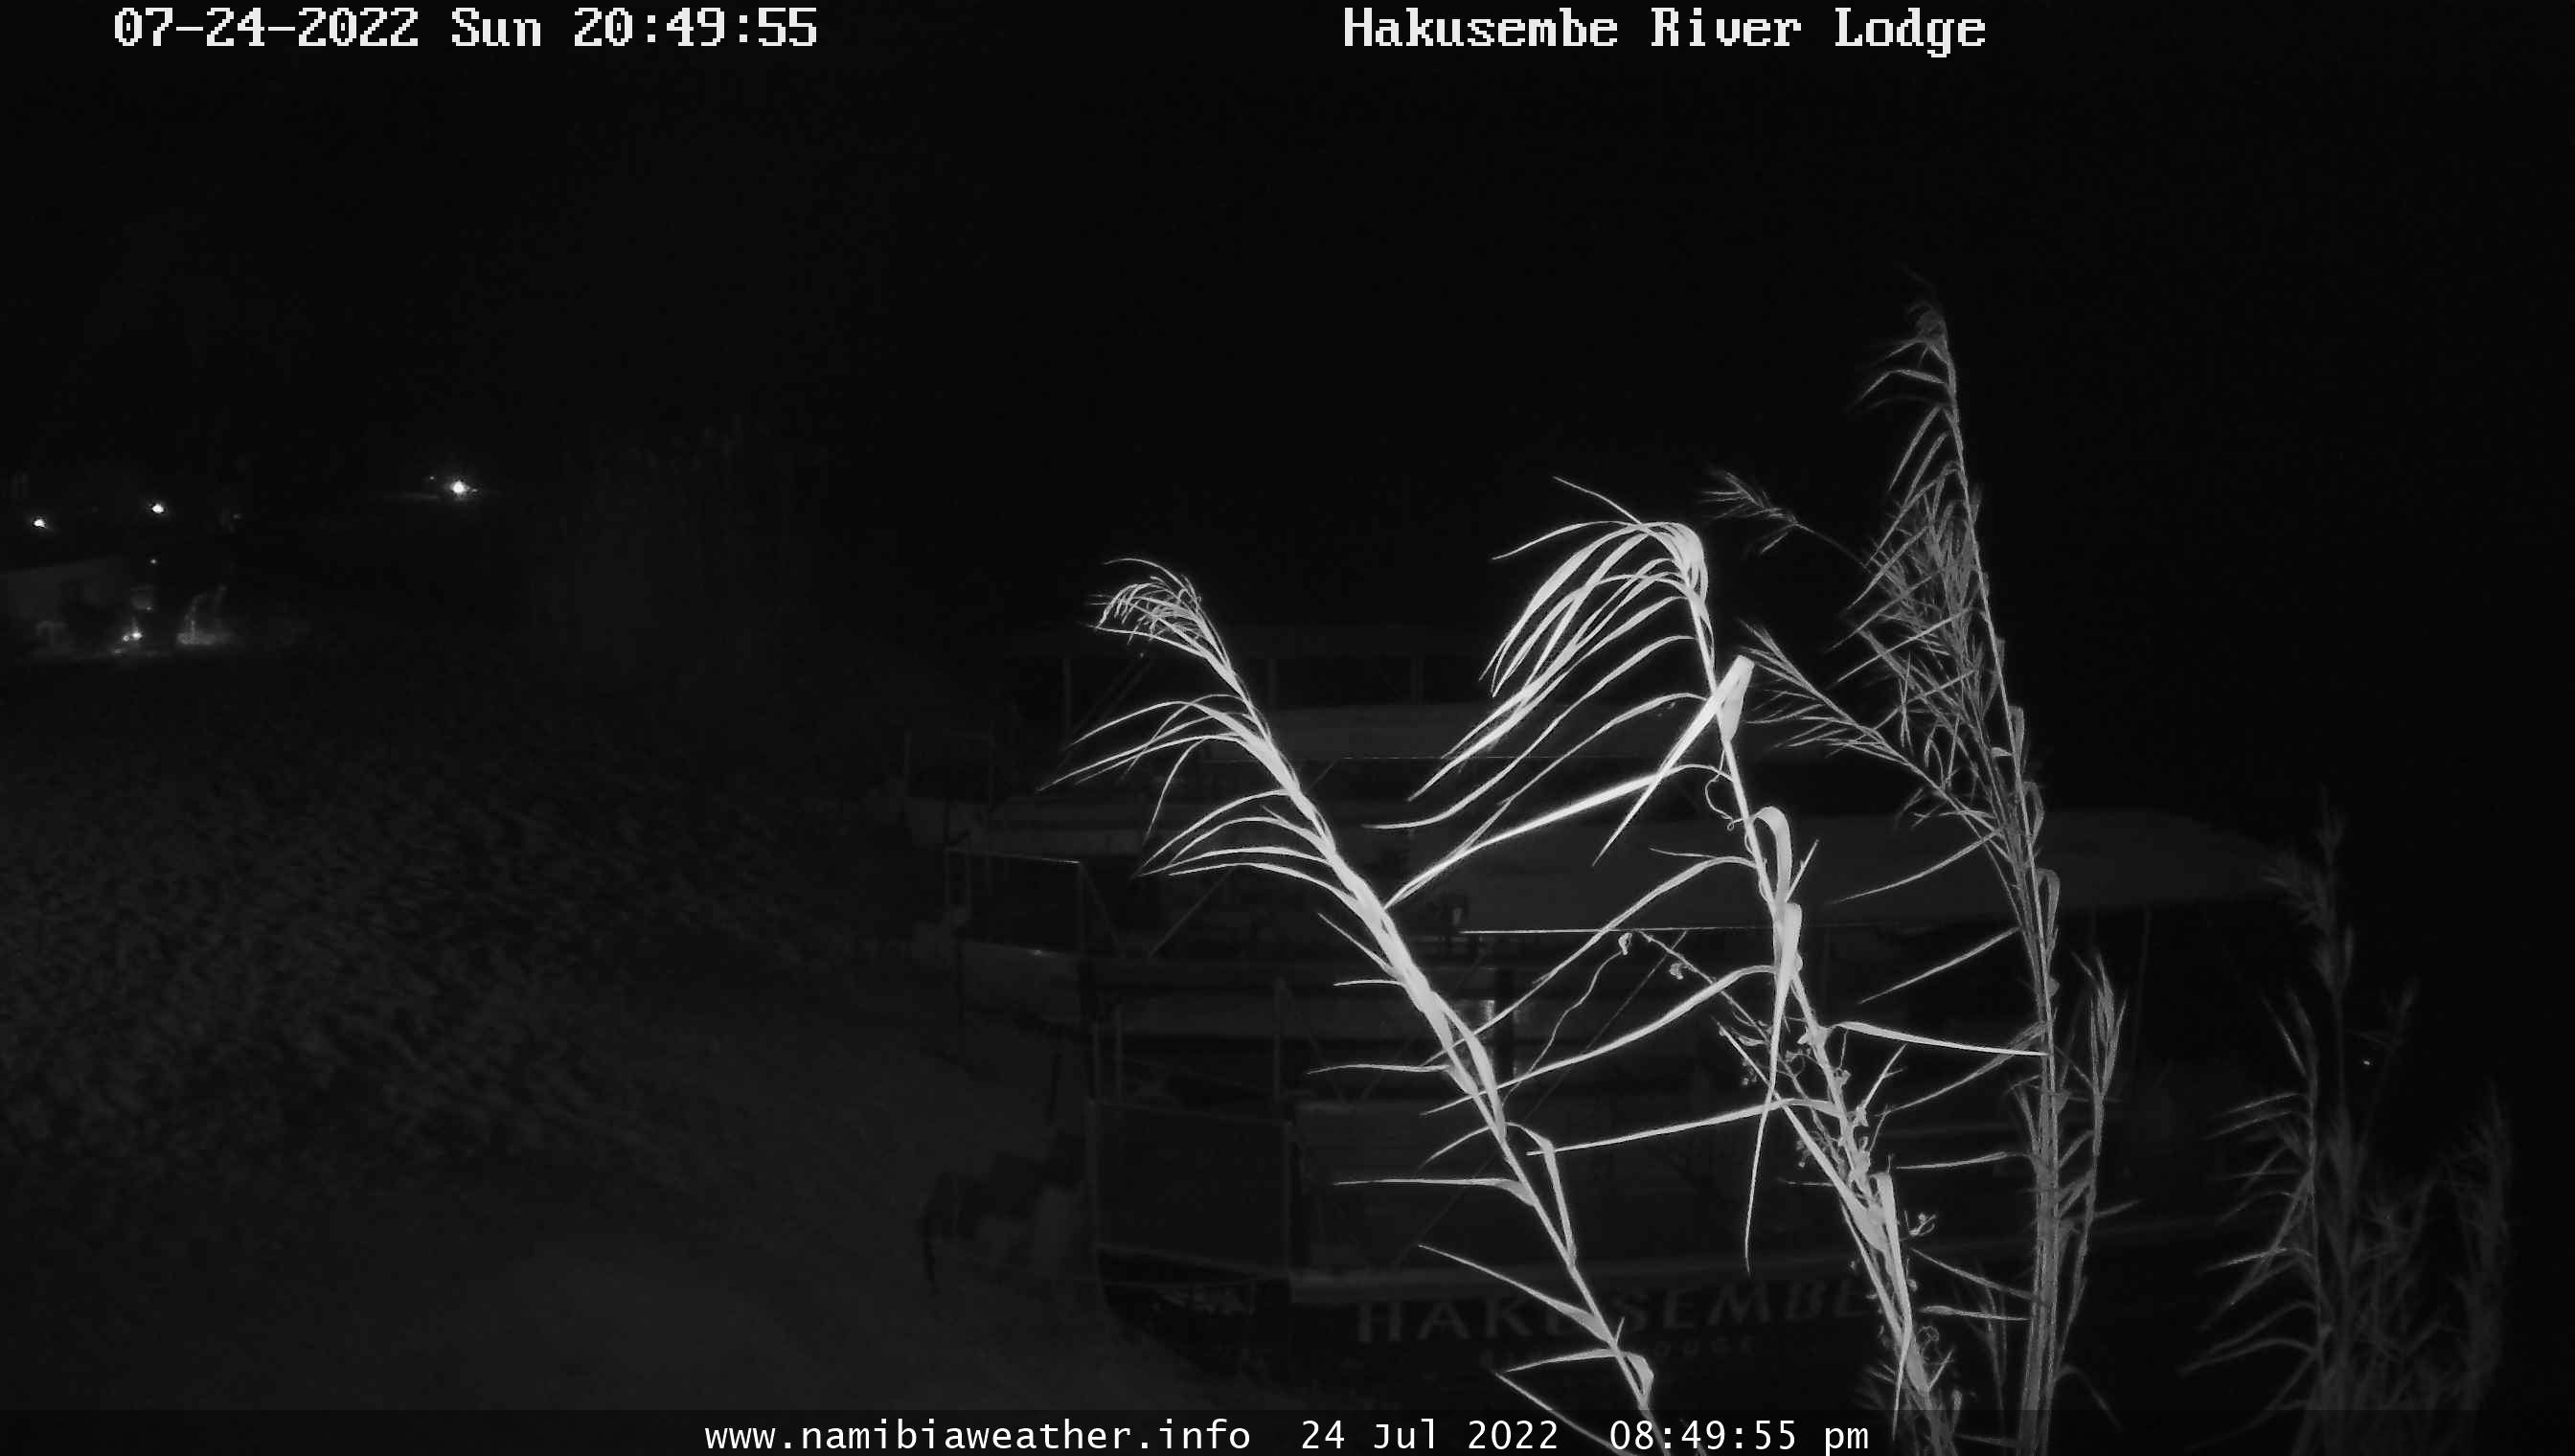 Hakusembe River WebCam